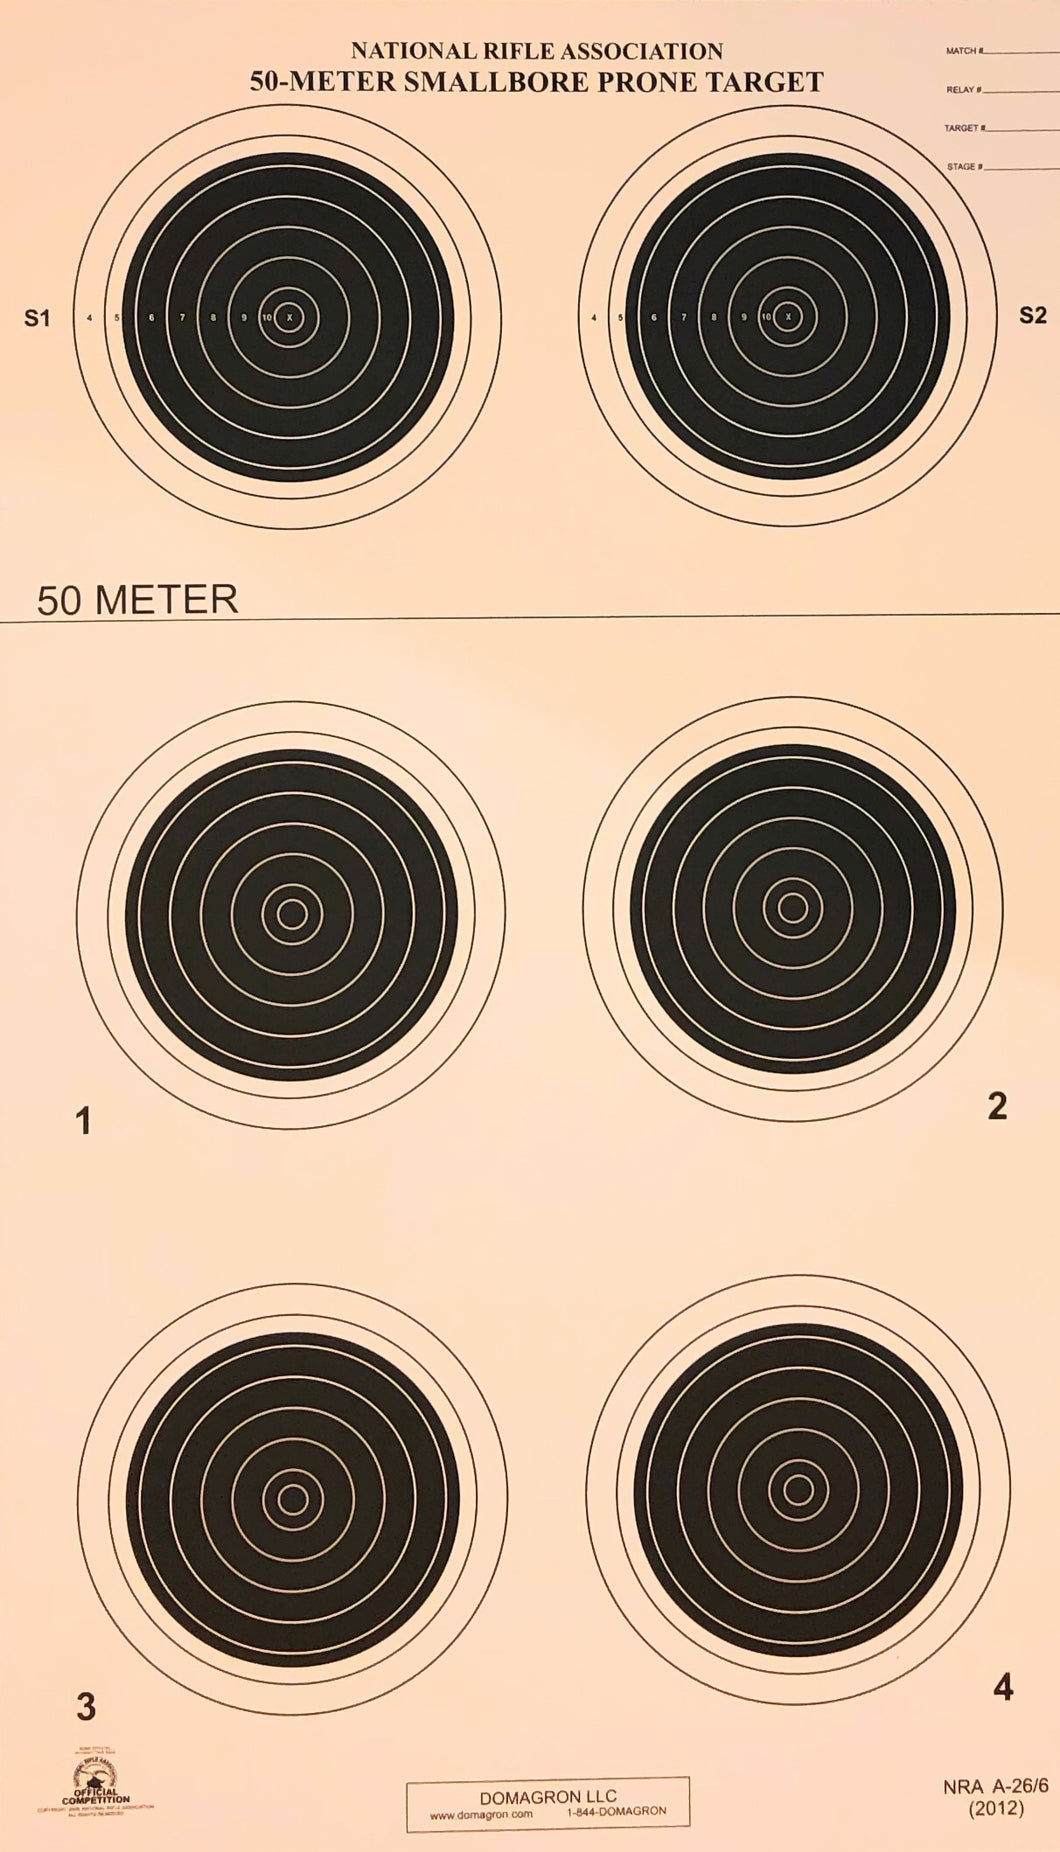 A-26/6 50 Meter Smallbore Rifle Target (Pack of 100)